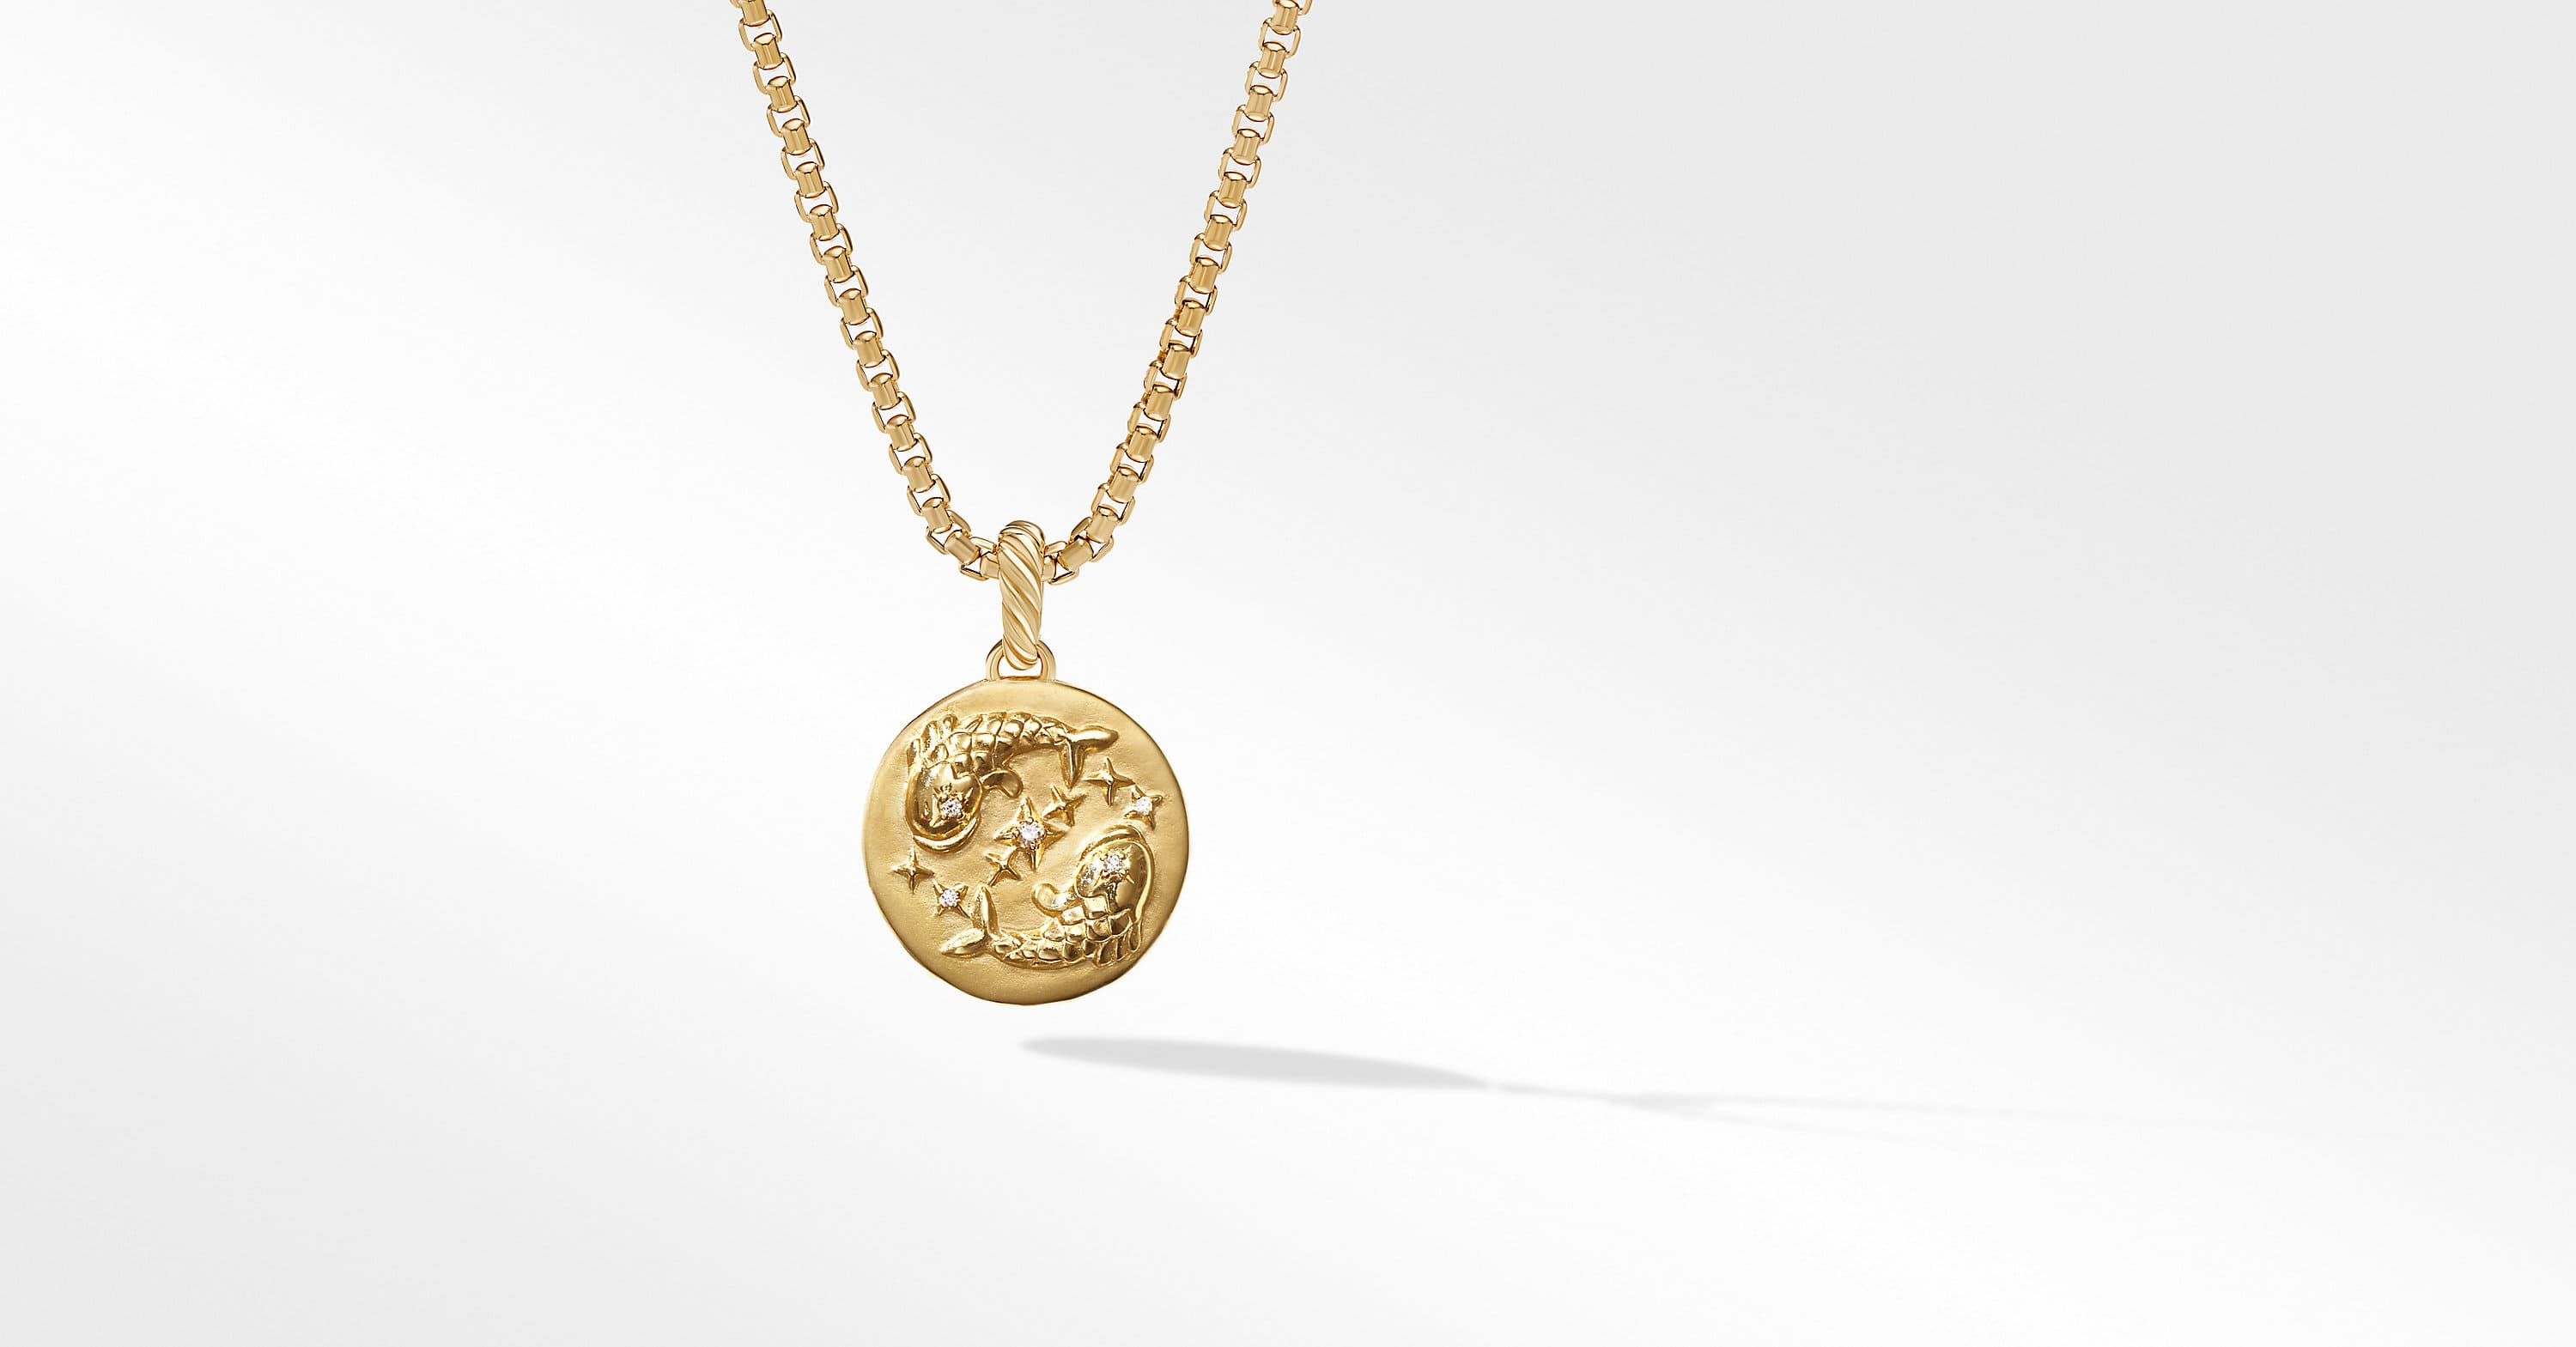 Pisces Amulet in 18K Yellow Gold with Diamonds